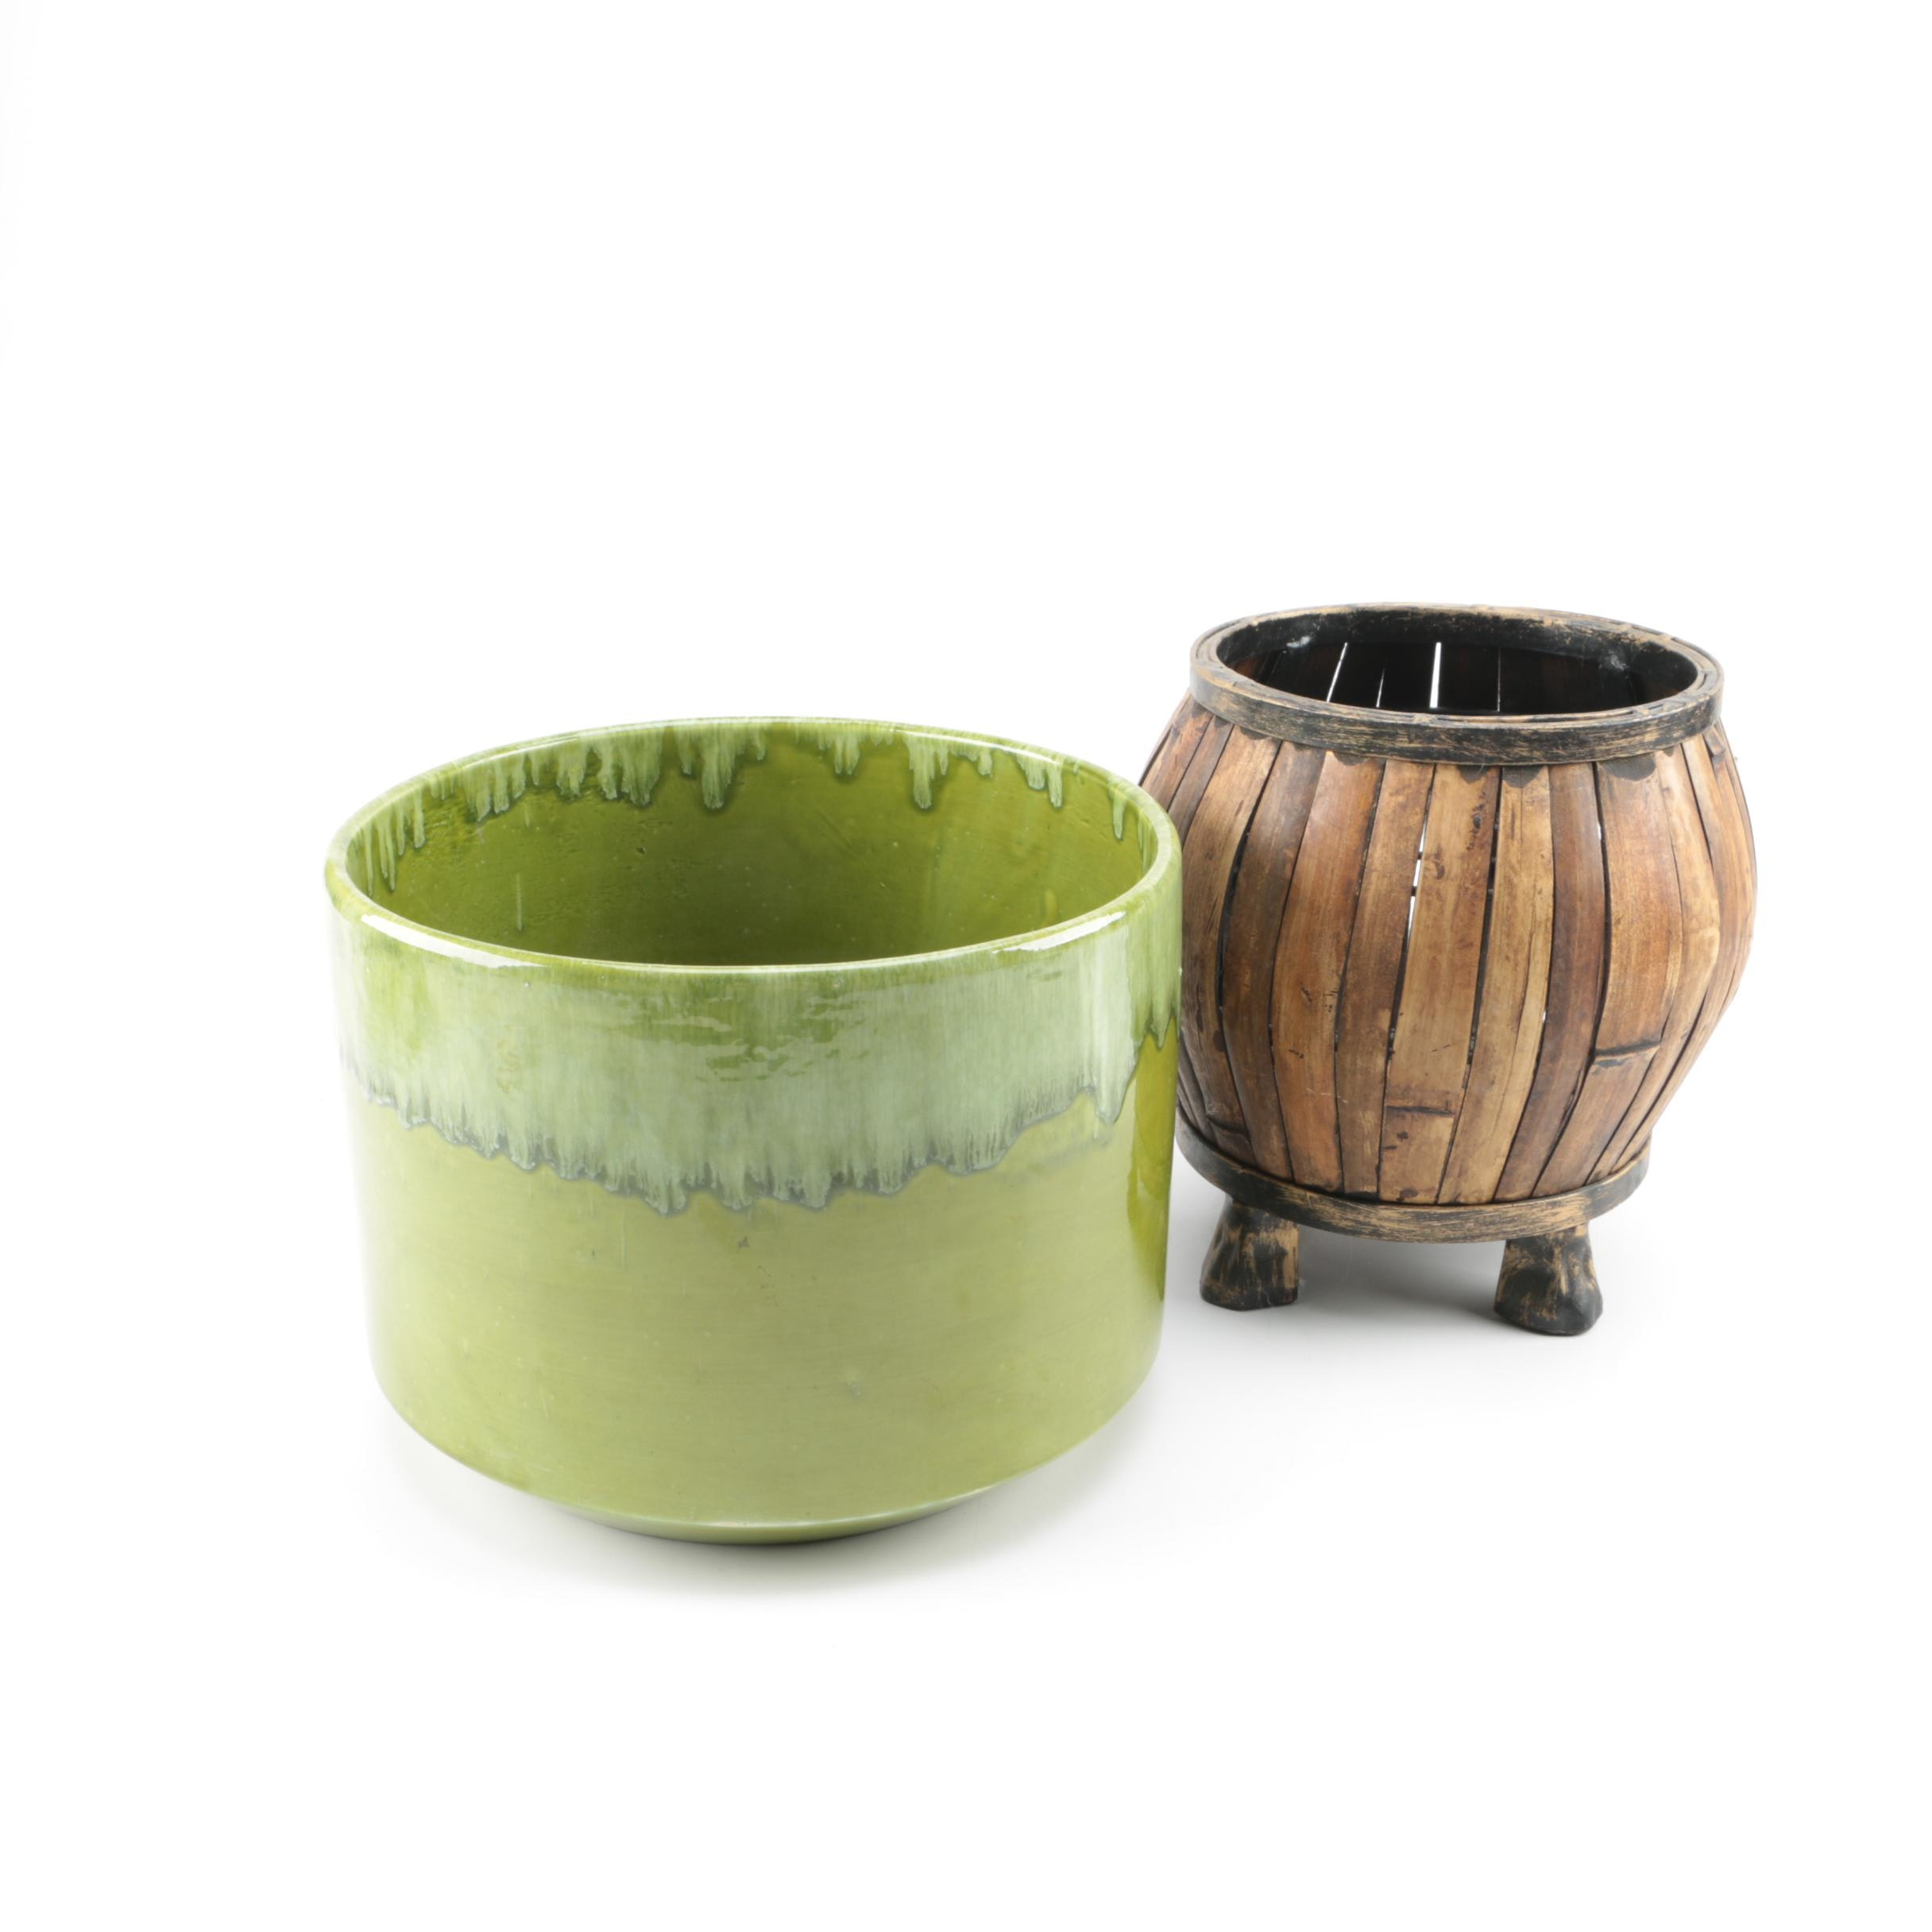 Decorative Wood and Ceramic Planters